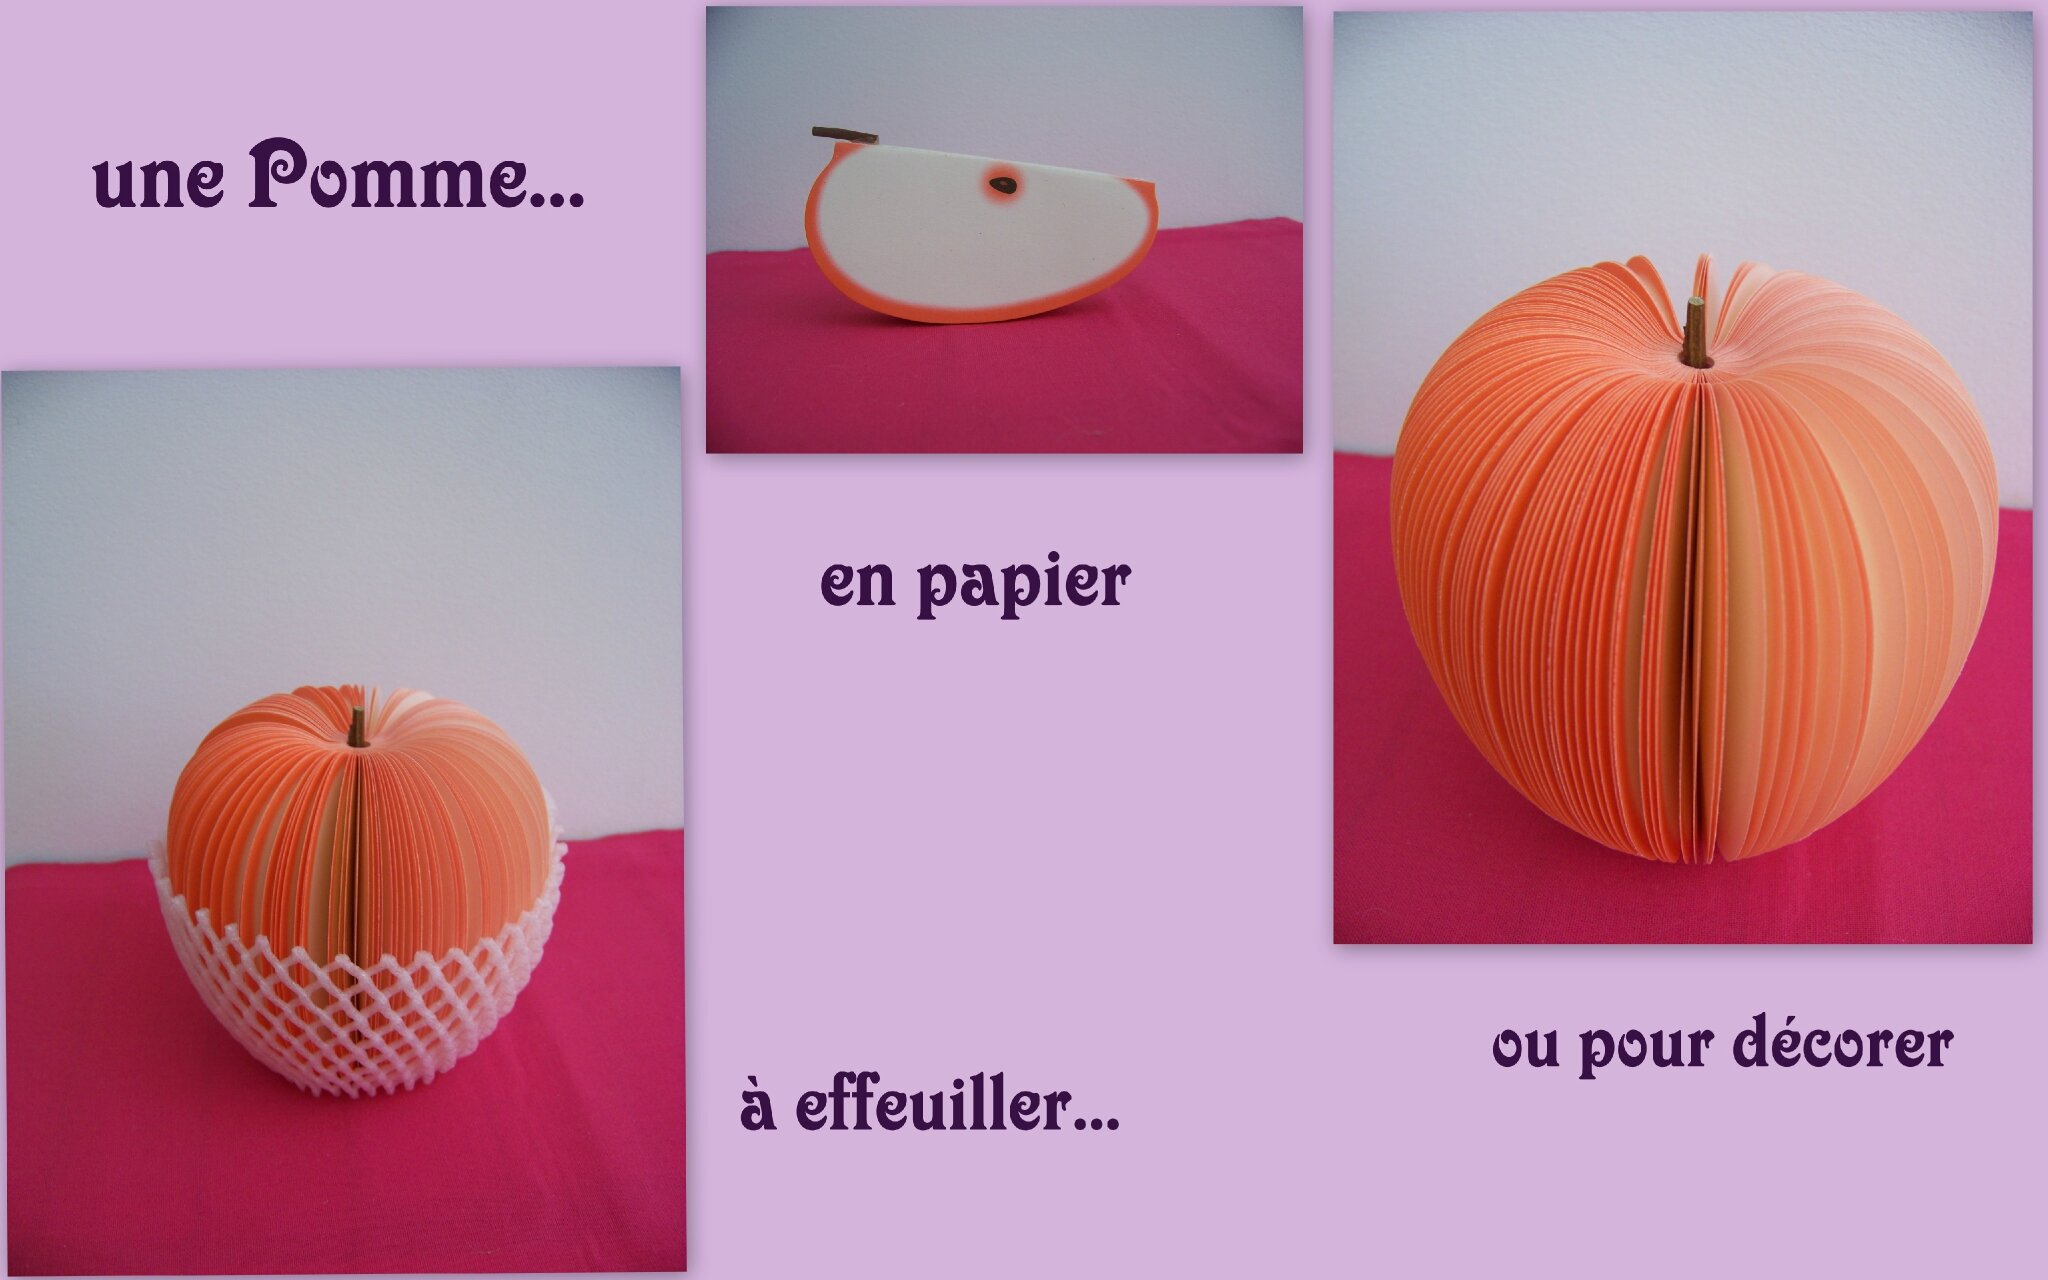 P comme Pomme from MissKa to Raphaëlle